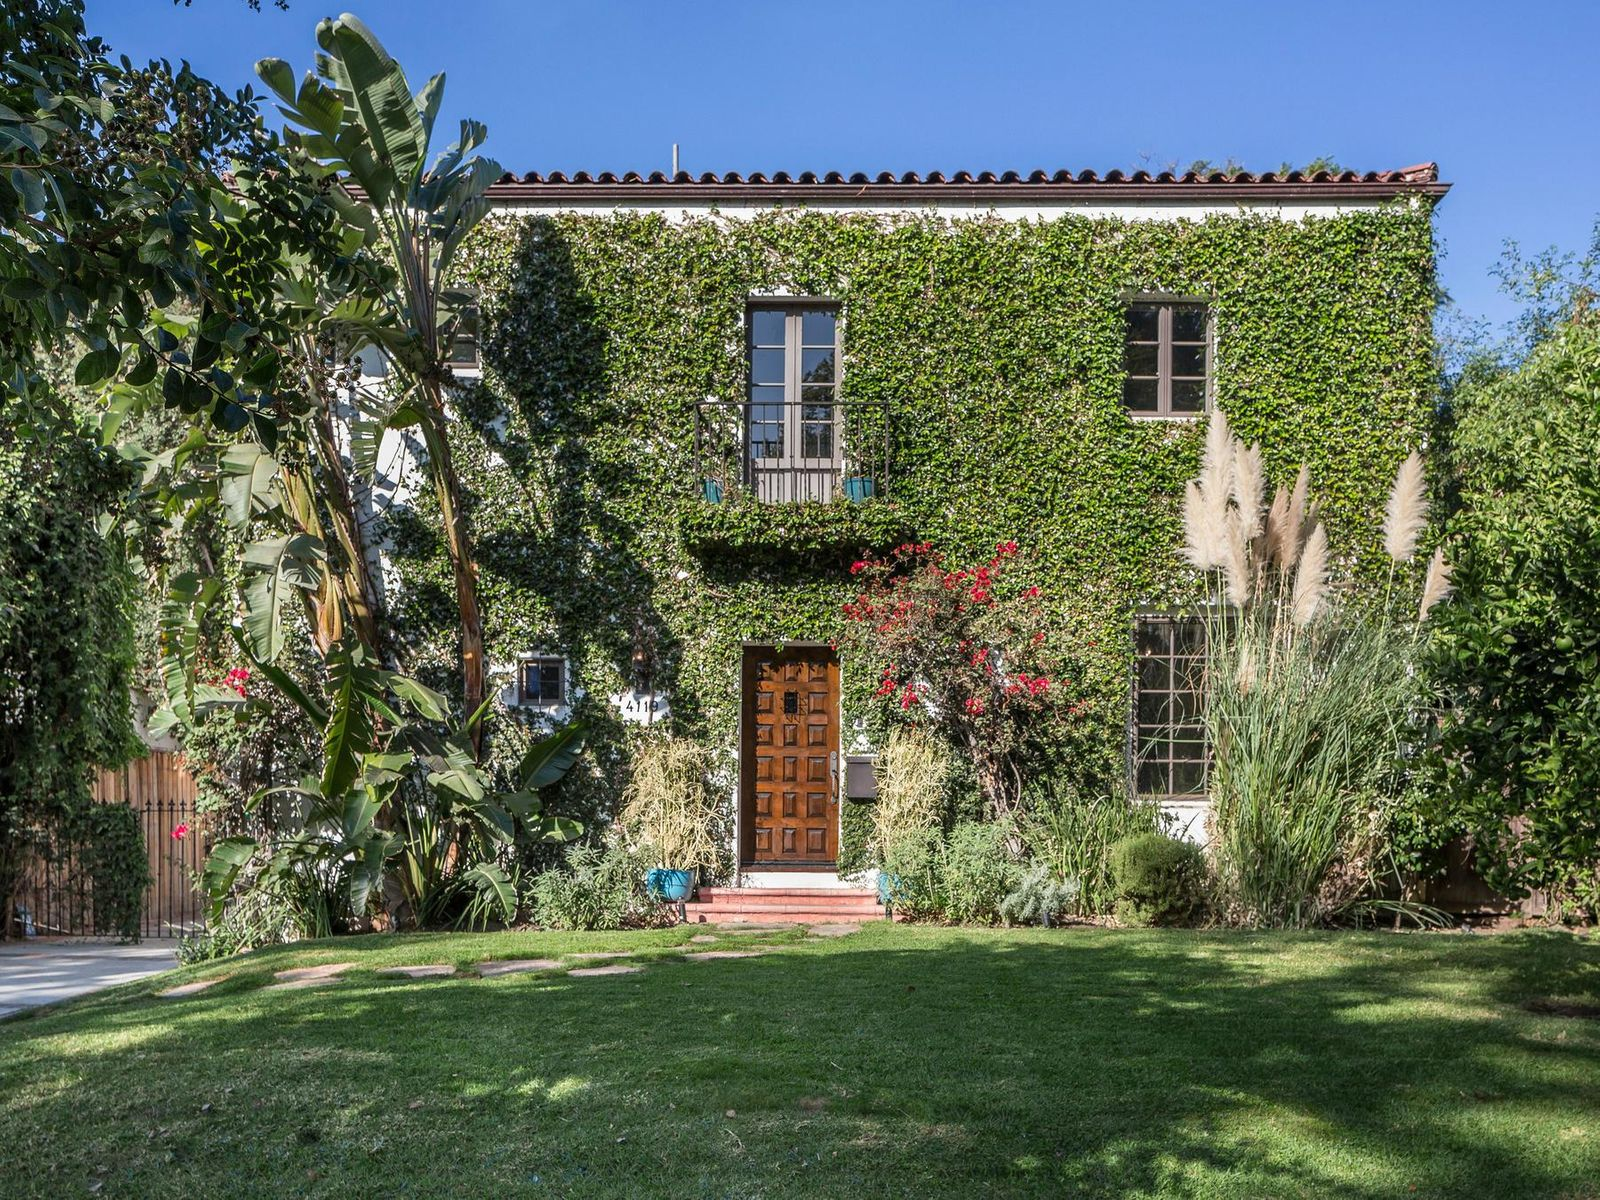 Bold and Romantic Spanish Compound, Studio City CA Single Family Home - Los Angeles Real Estate